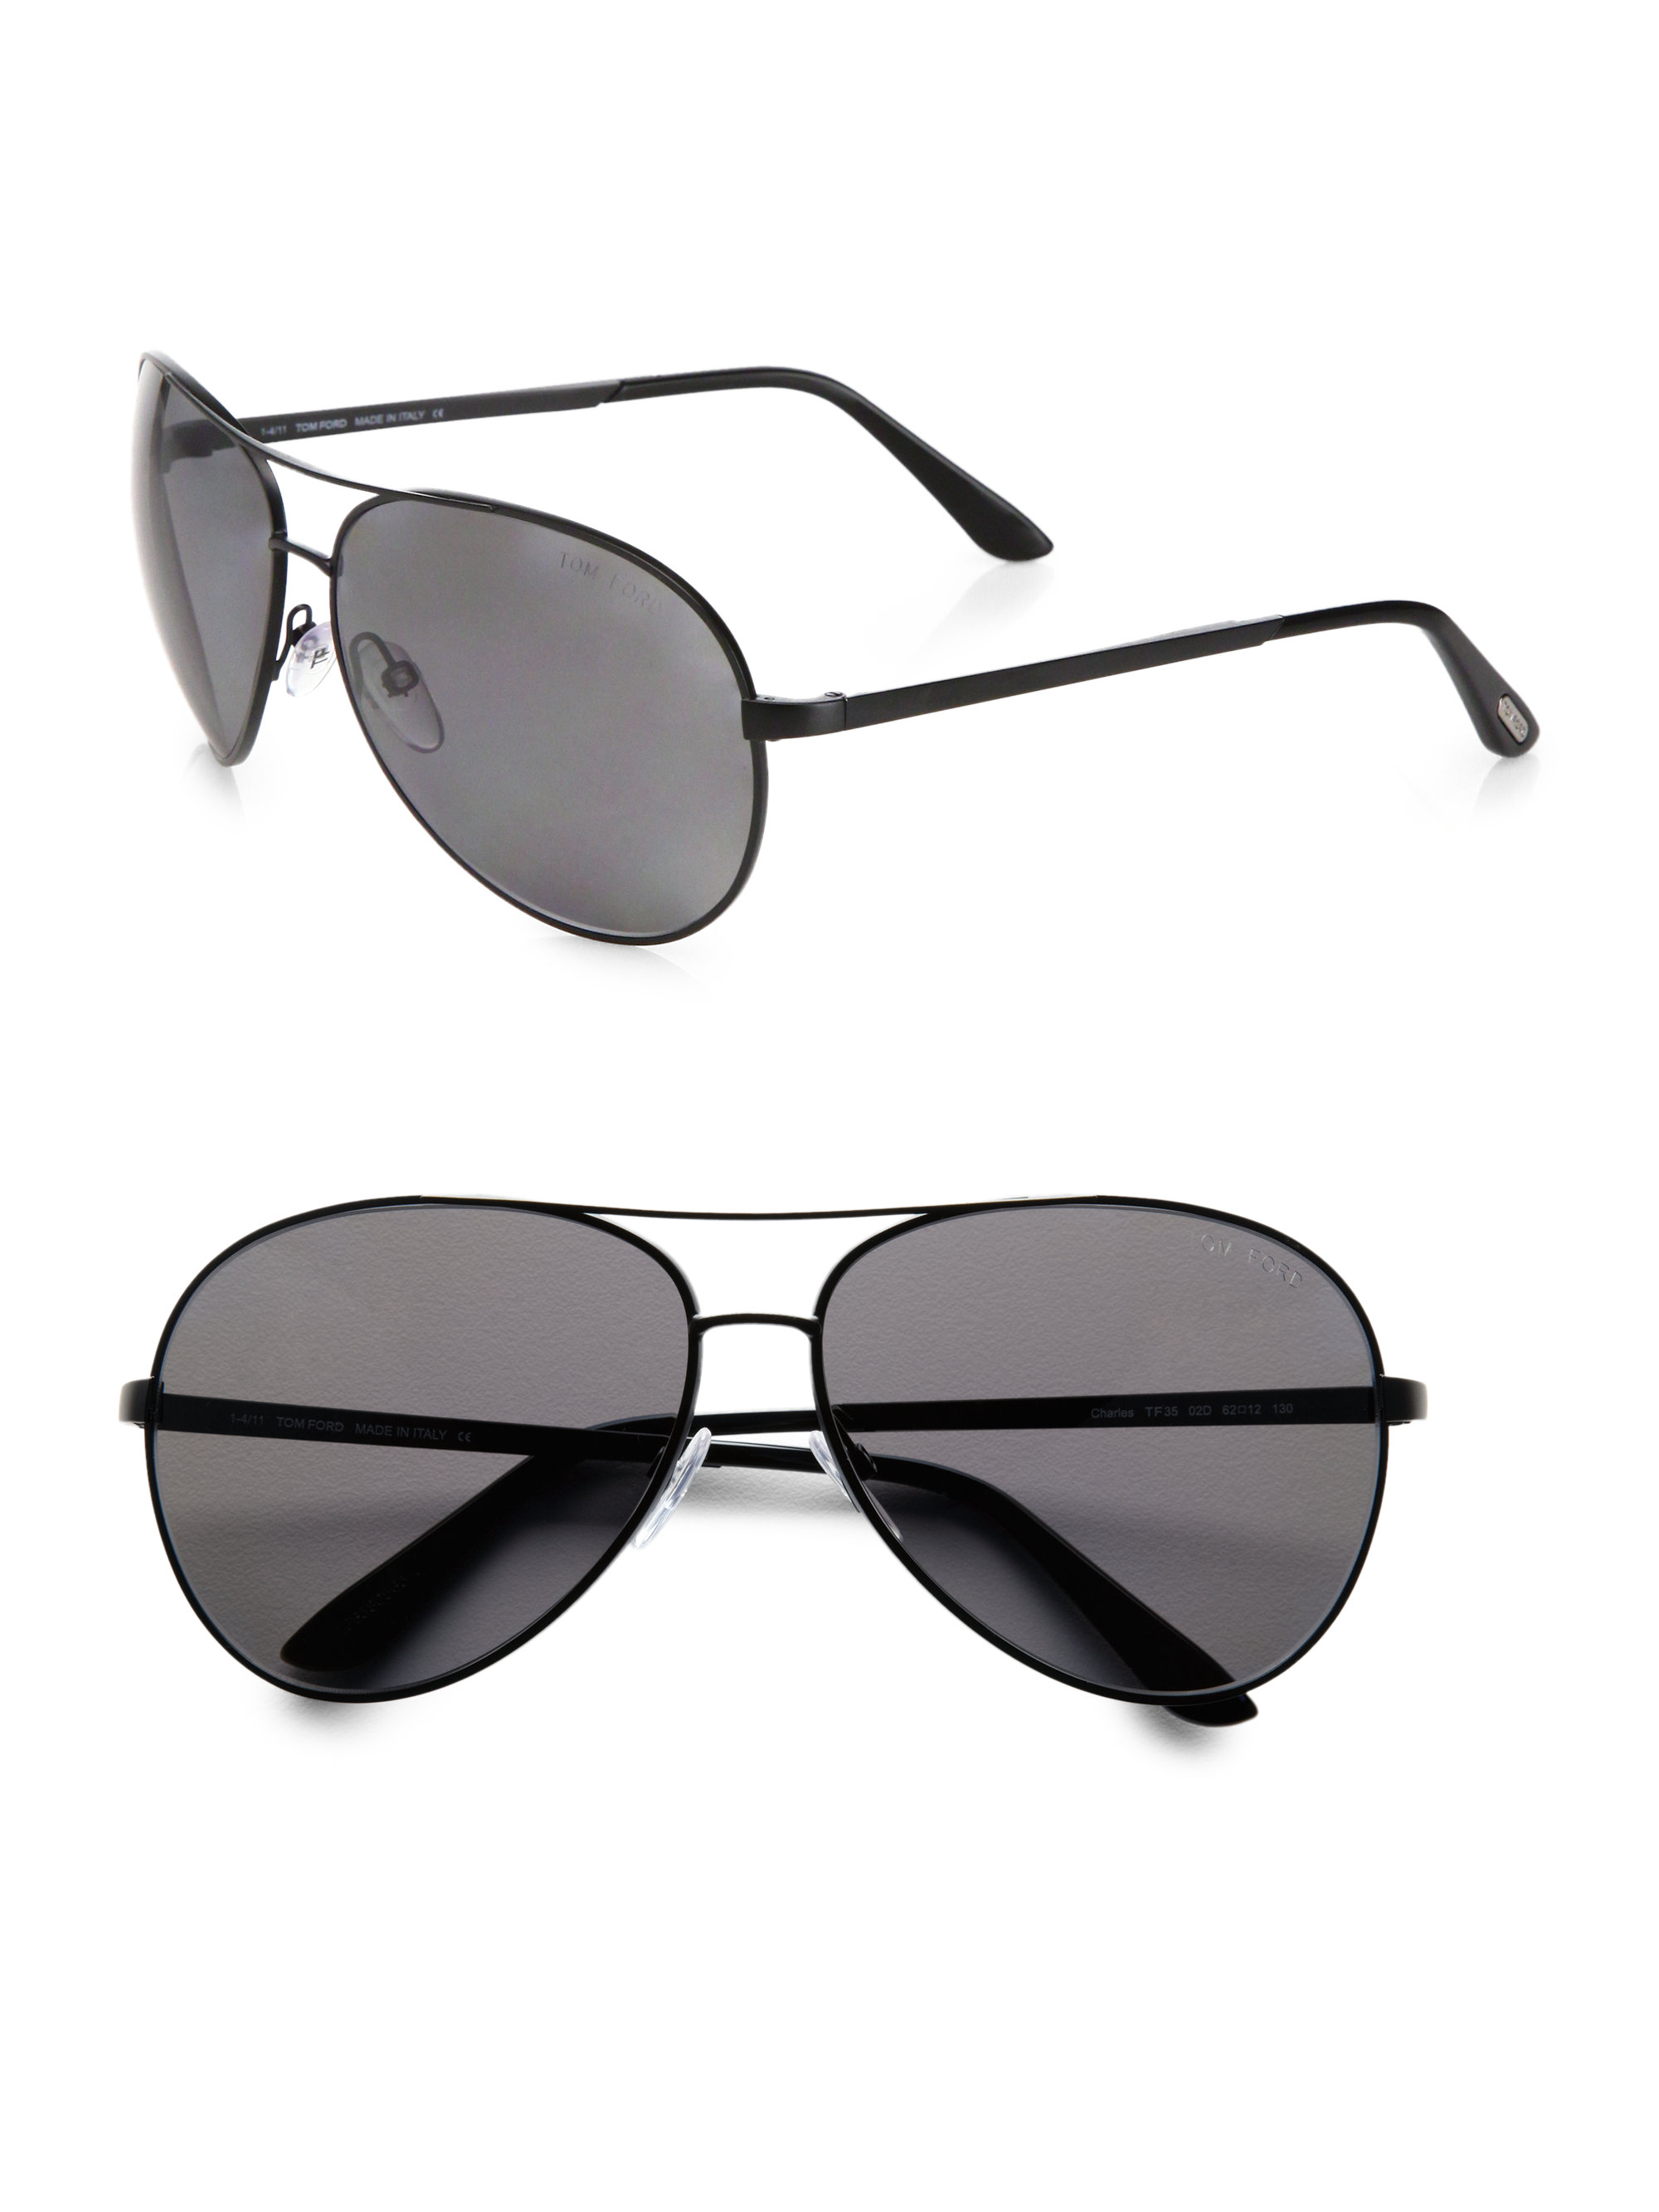 7d033227f69 Lyst - Tom Ford Charles Metal Aviator Sunglasses in Black for Men